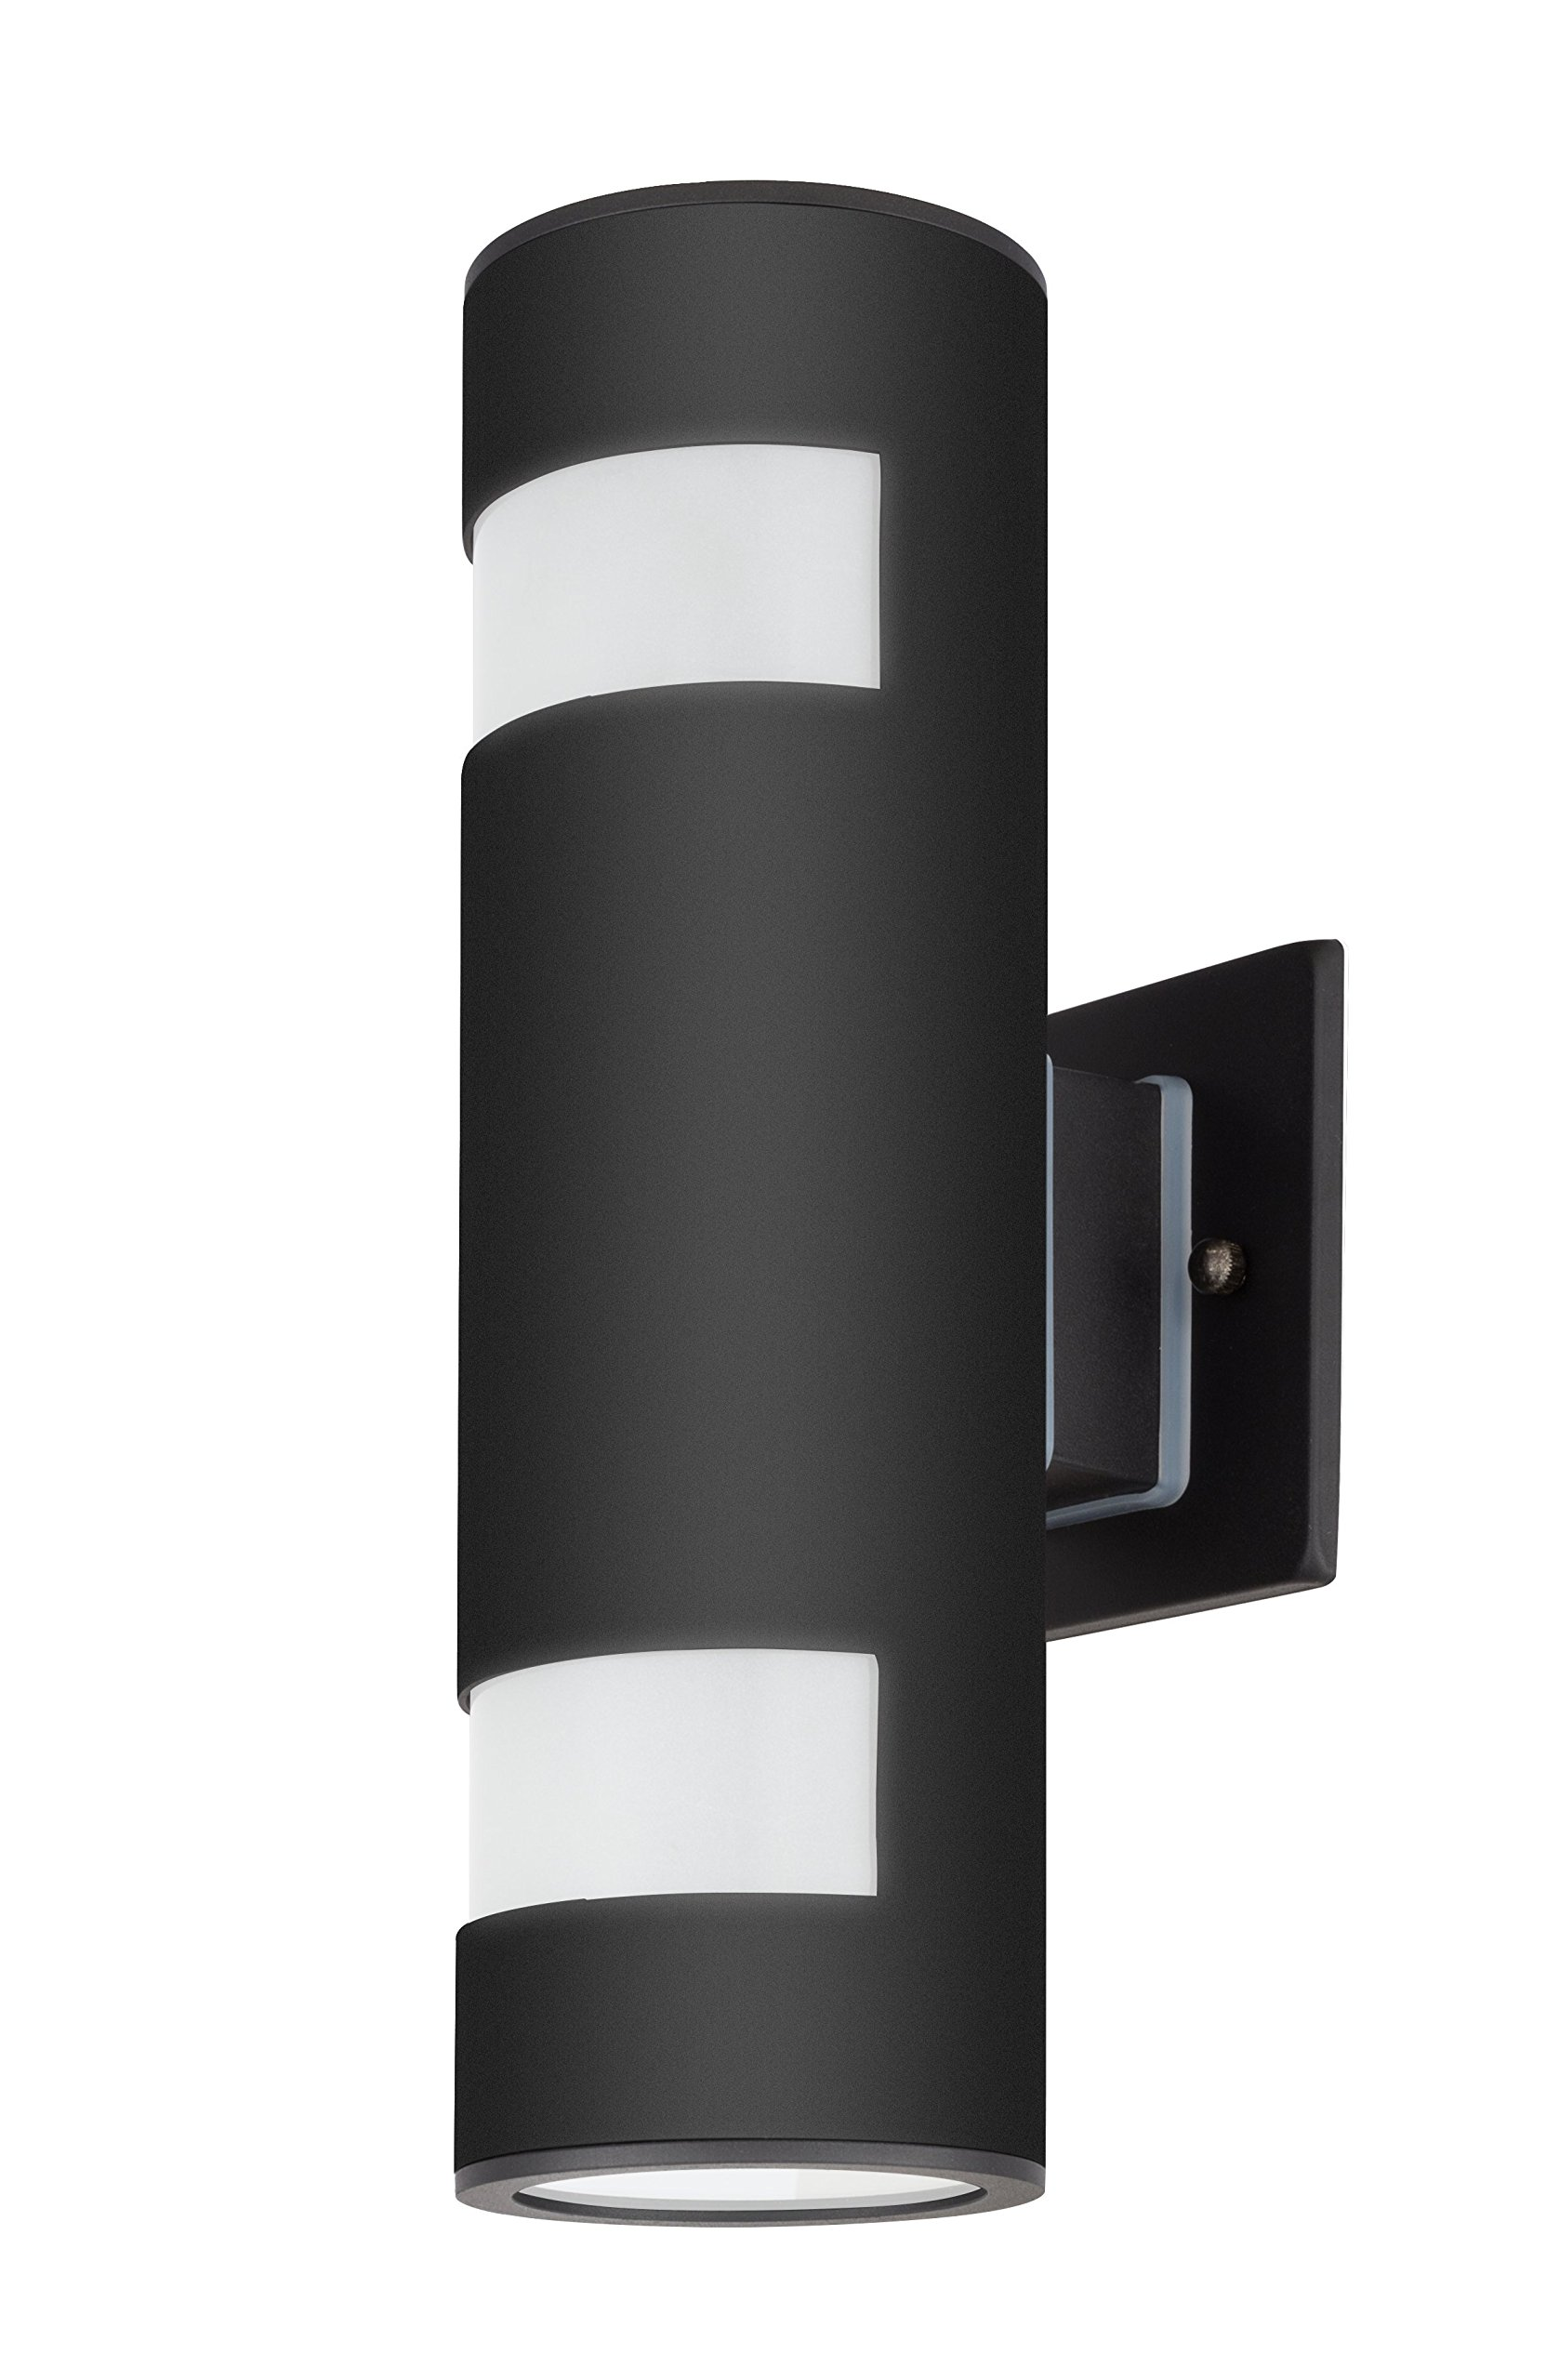 TengXin Outdoor Wall Lamp Modern Wall Sconce Outdoor Light Fixture Black Aluminum Material,Toughened Glass,E27,Waterproof,UL Listed - Light Body is made of aluminum and Up/Down caps are made of Toughened Glasses, Modern Outdoor Wall Sconce, sealed with Silicone Adhesive.Strong and Durable. UL Listed, Weather proof & Rust resistant.High Quality Aluminum Alloy Lamp Body,Exquisite Workmanship,Effective Heat Dissipation Prolong the Service Life Medium Base Socket:features on E26/E27 that is compatible with a variety of Incandescent,LED(60 Watt max,not included) - patio, outdoor-lights, outdoor-decor - 81GKpq9ienL -